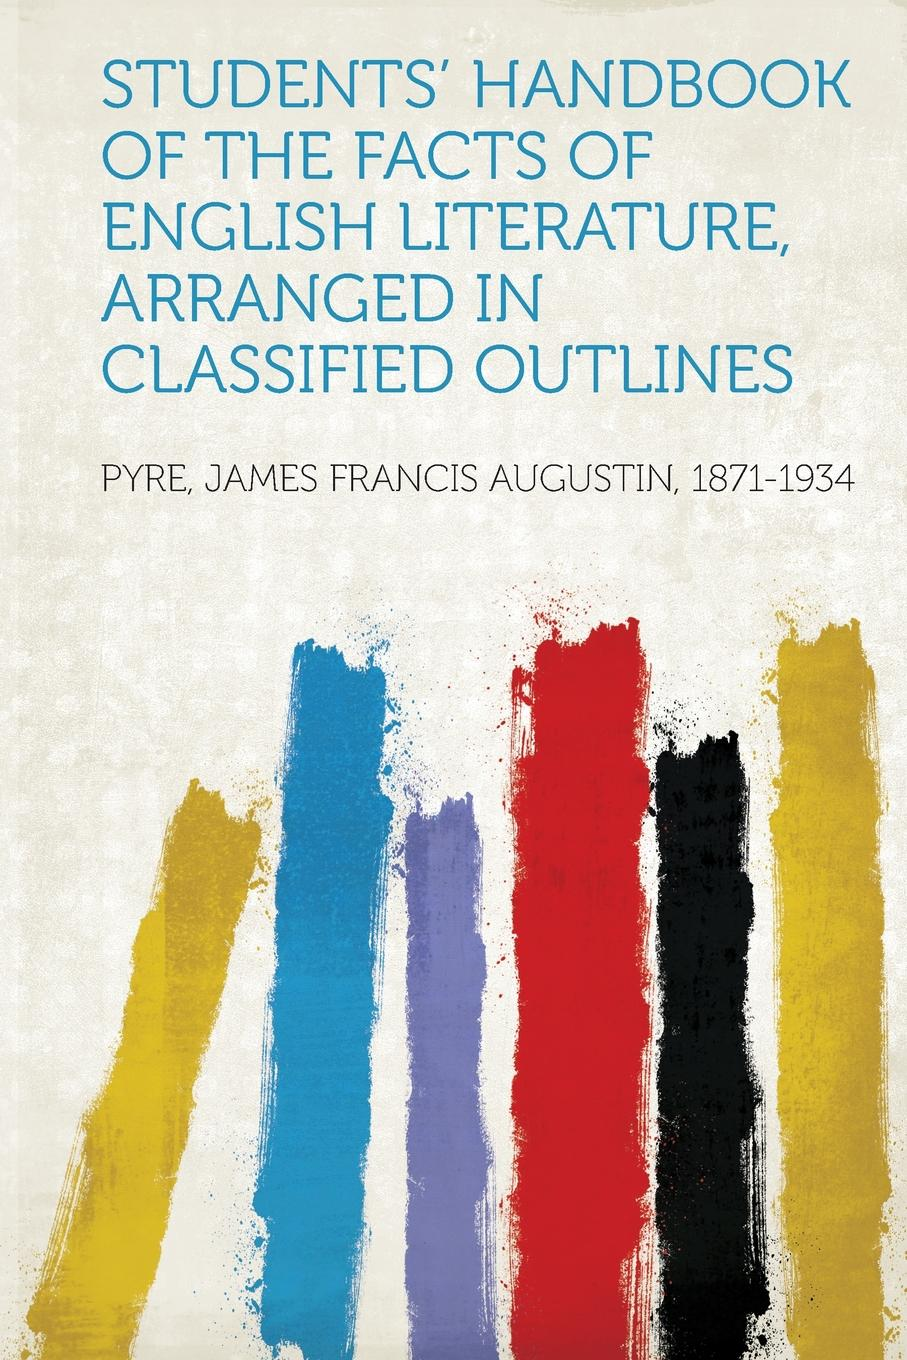 Students. Handbook of the Facts of English Literature, Arranged in Classified Outlines